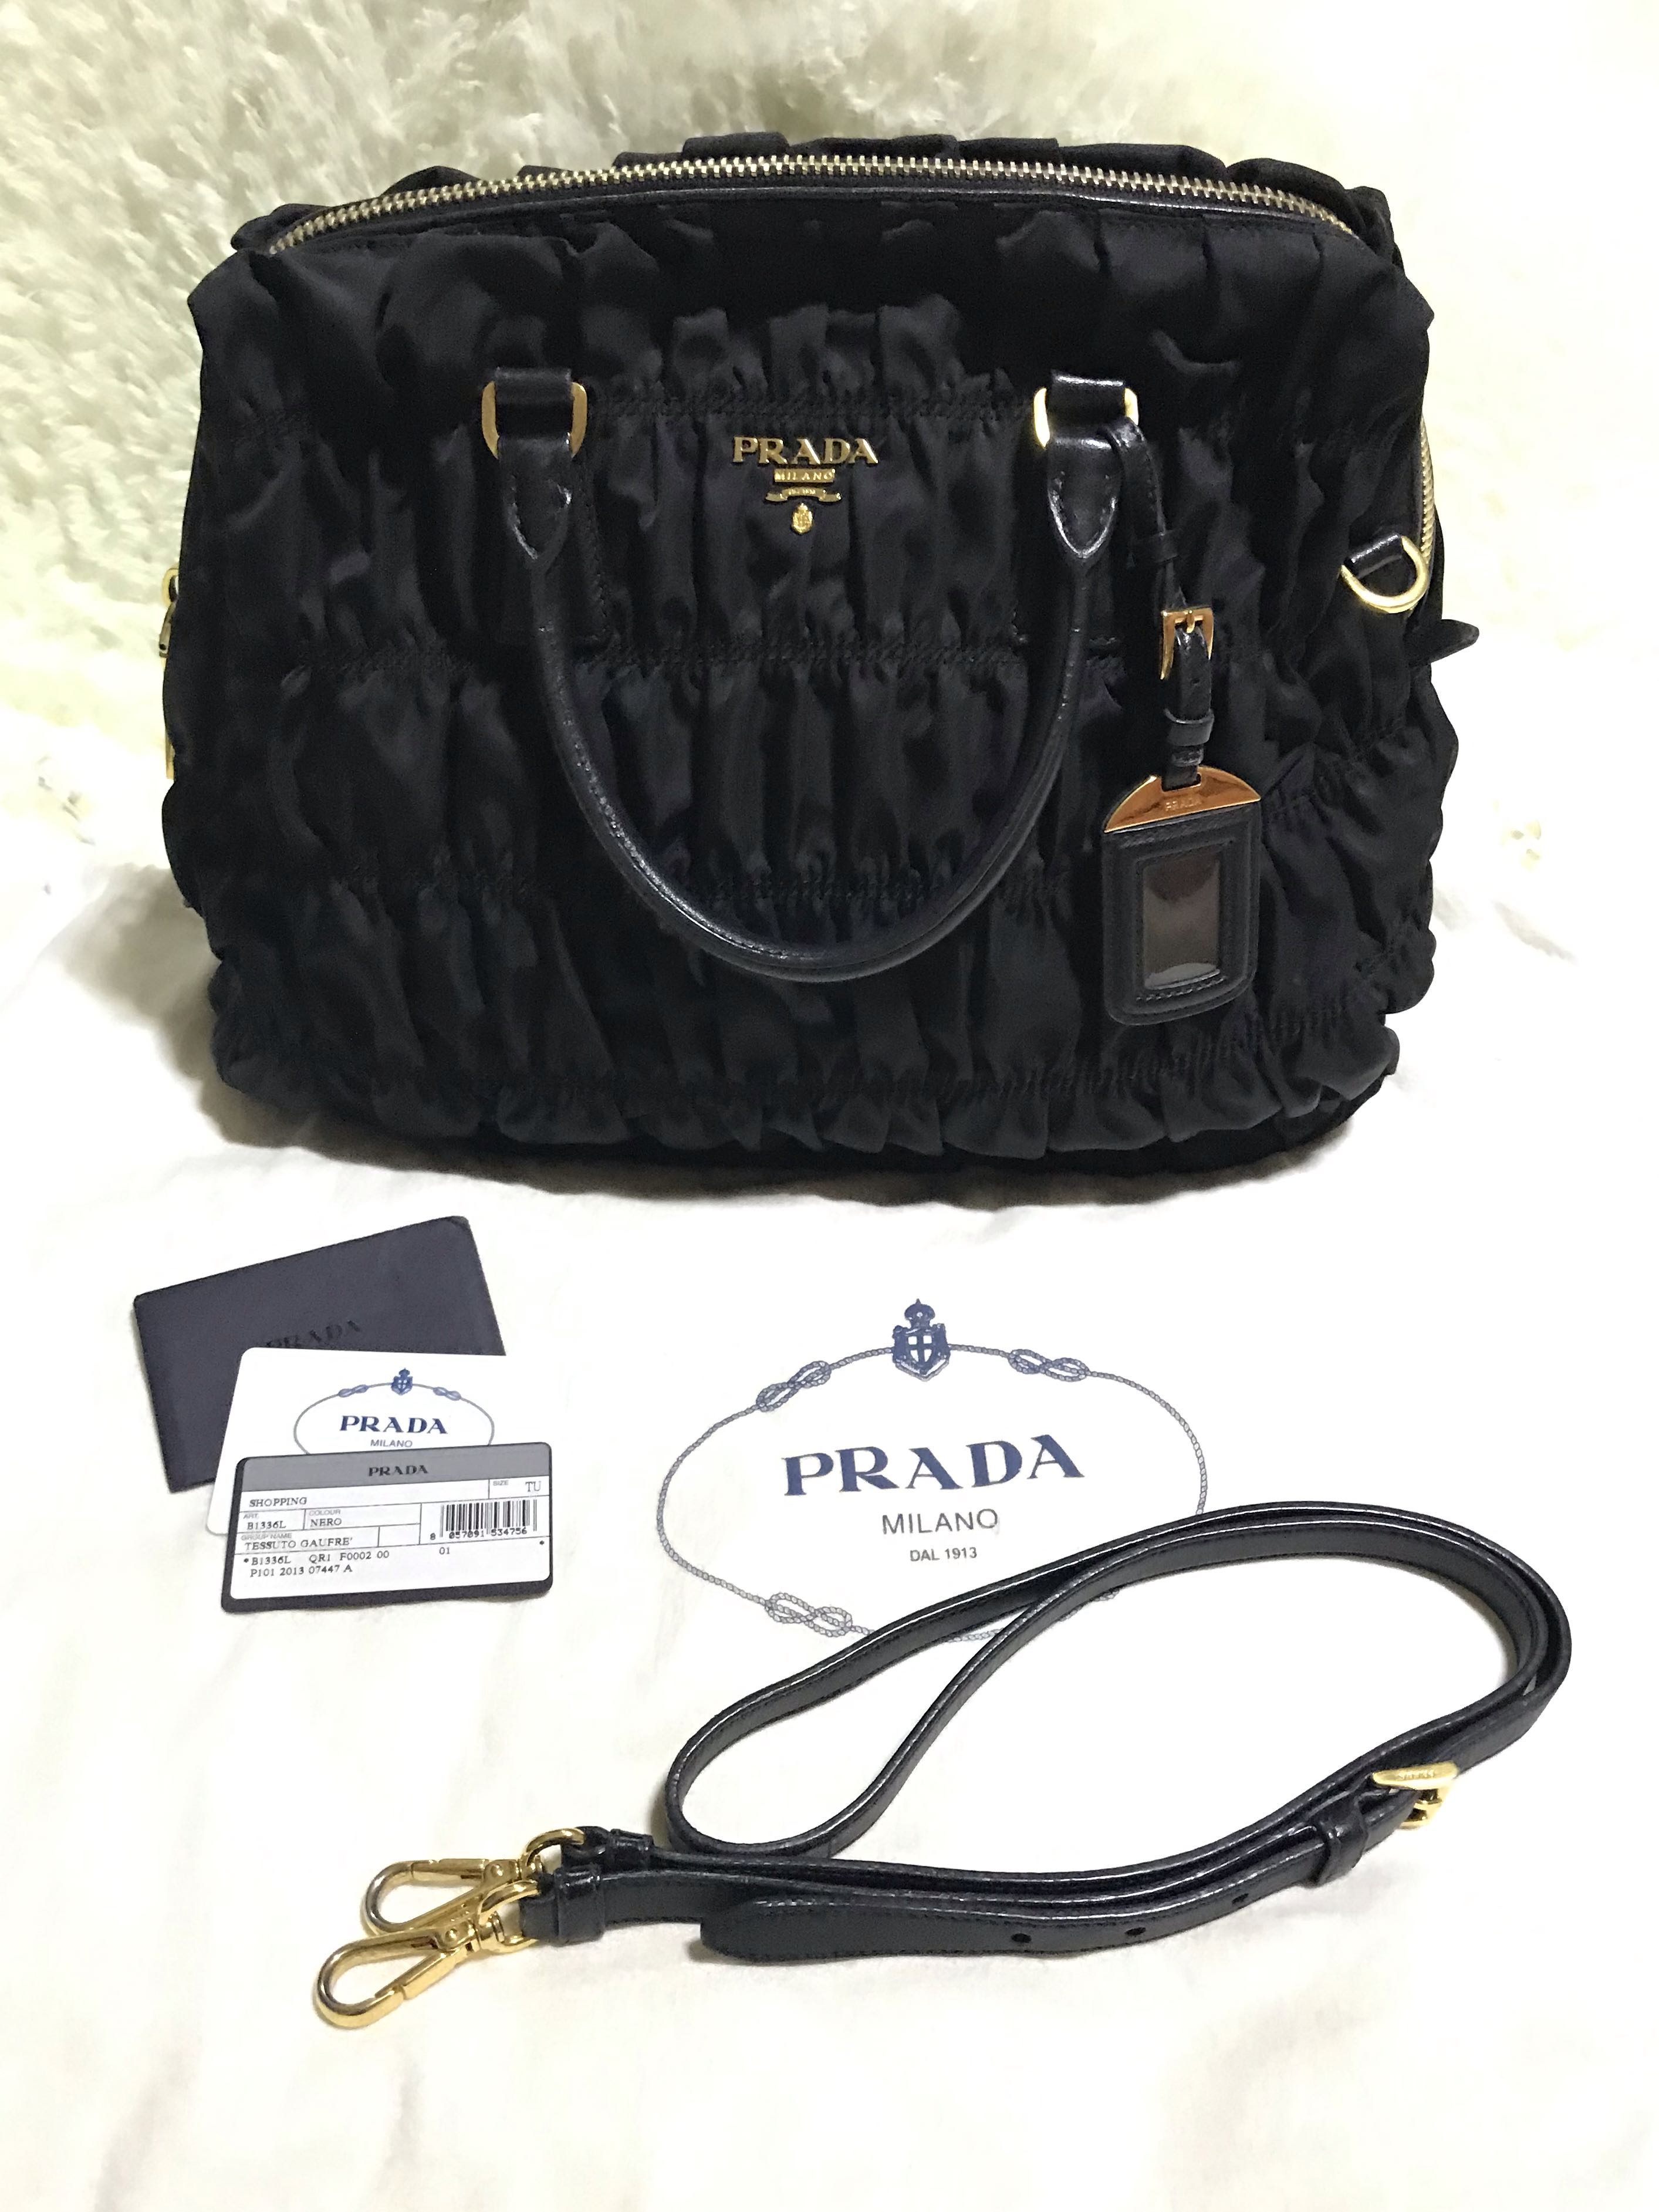 855d494153054c Prada Tessuto Gaufre Classic Design, Luxury, Bags & Wallets, Handbags on  Carousell